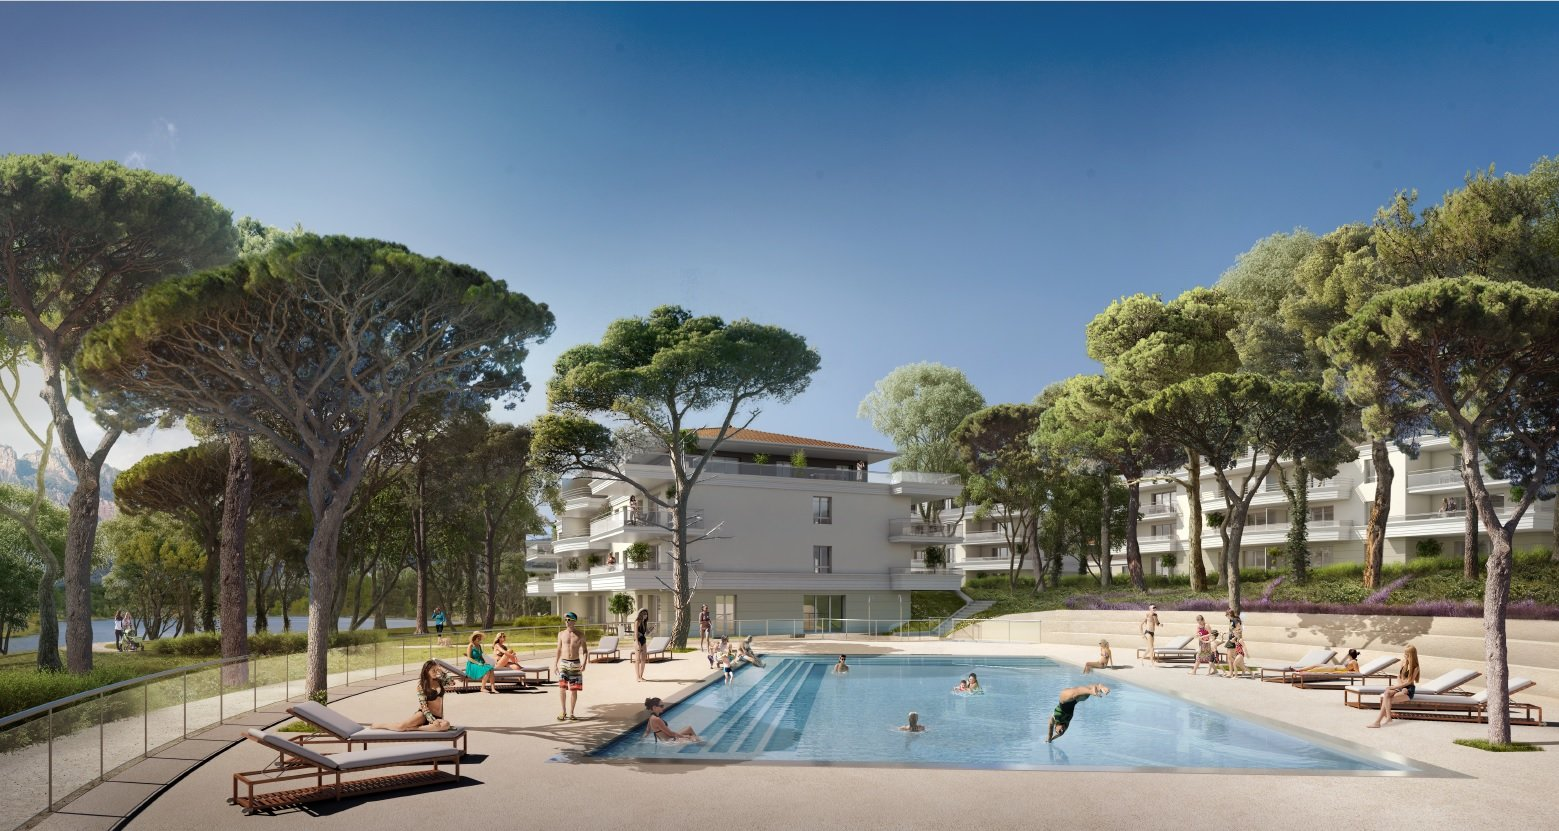 3 ROOM APARTMENT RESIDENCE WITH POOL AT PUGET SUR ARGENS